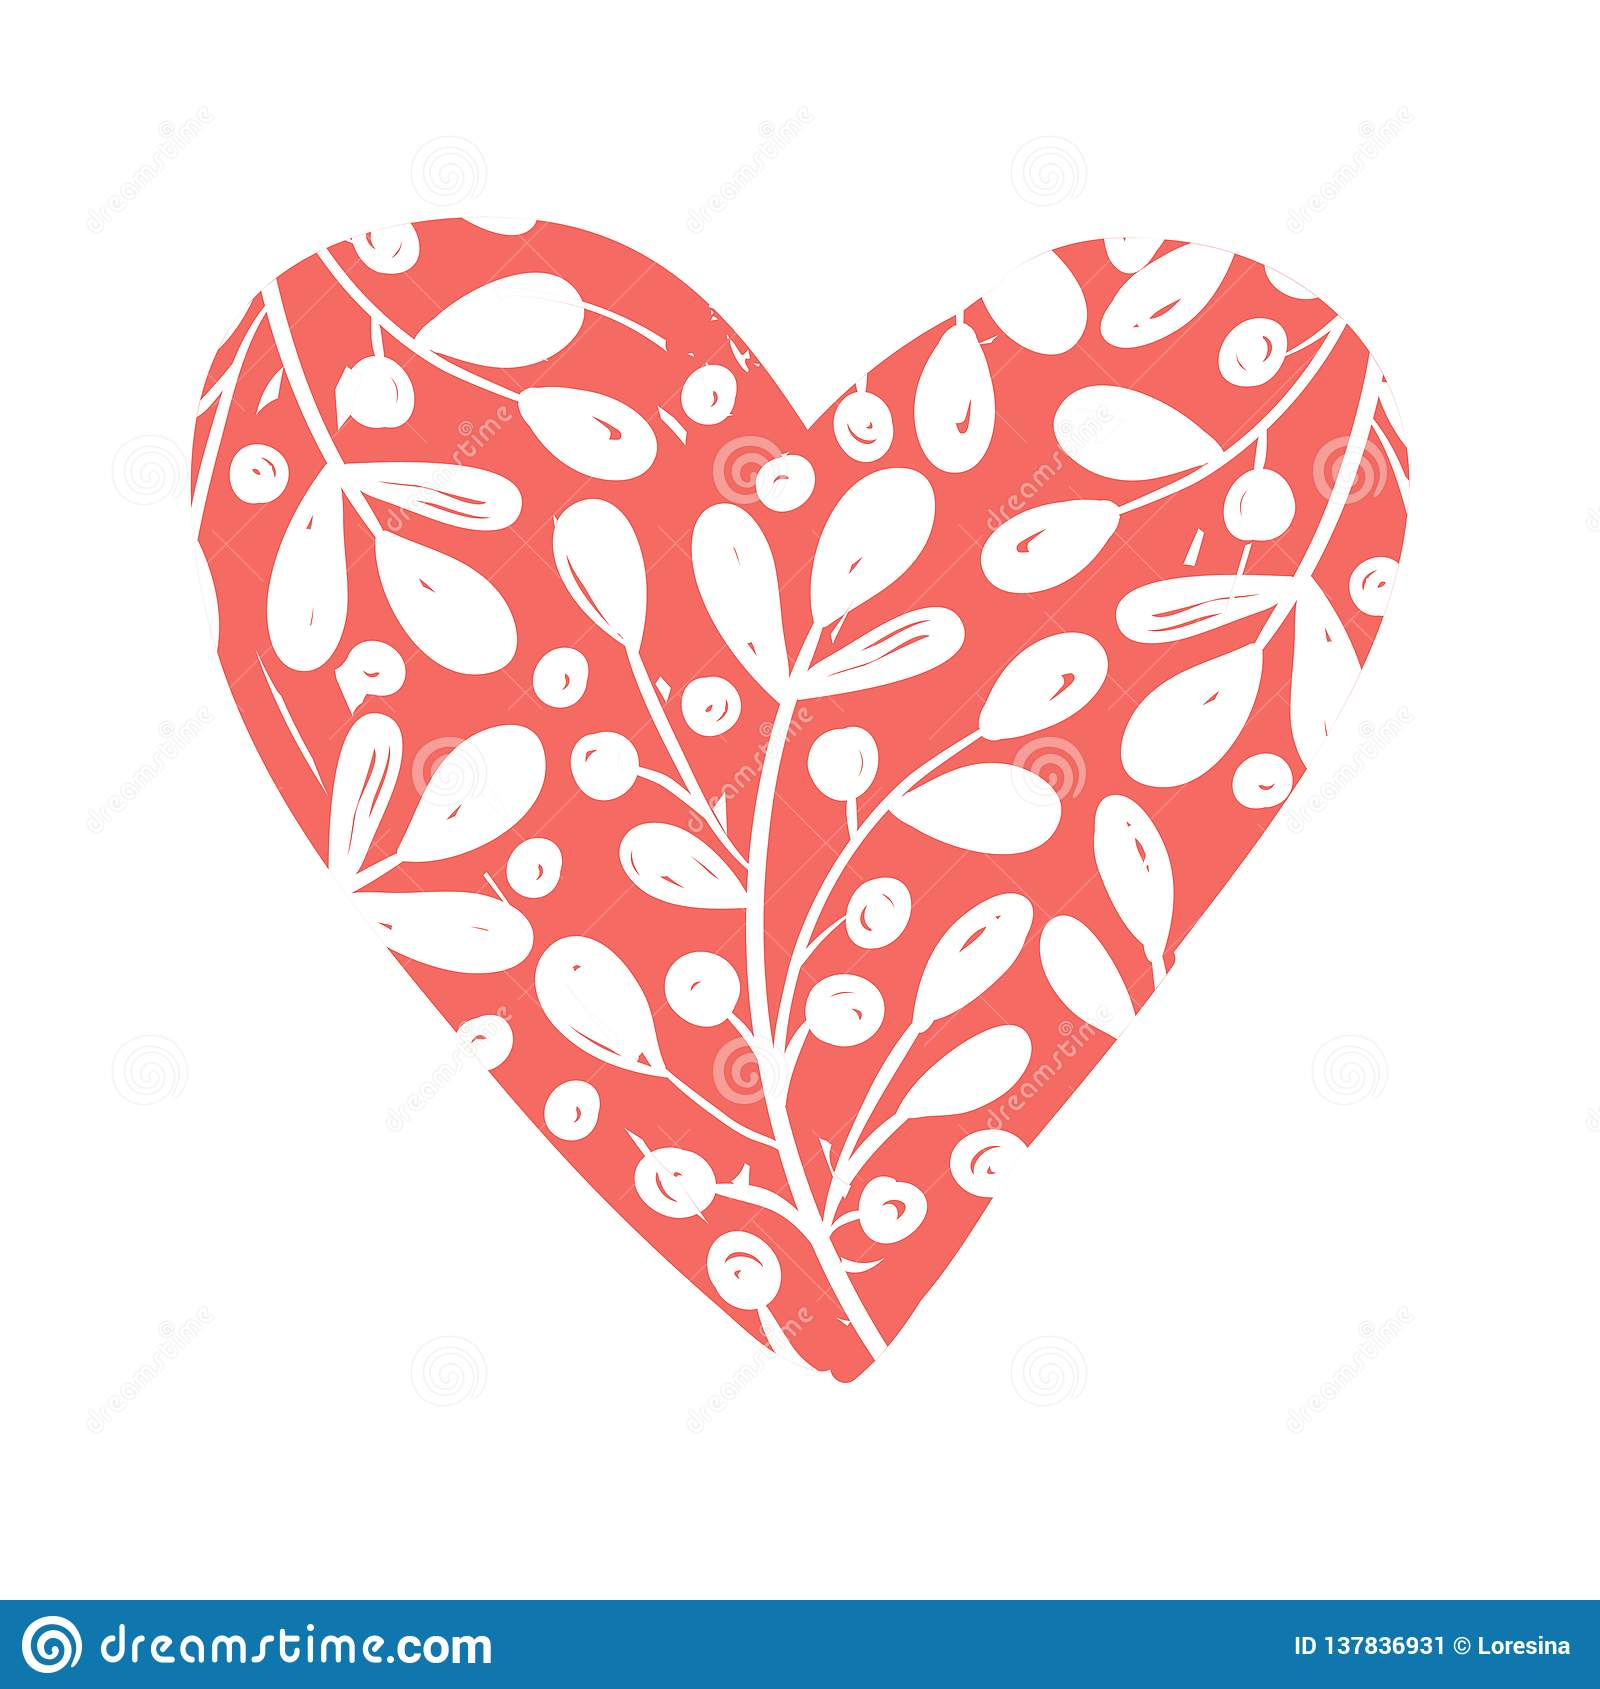 Vector Collections Of Hand Drawn Heart Isolated On Transparent